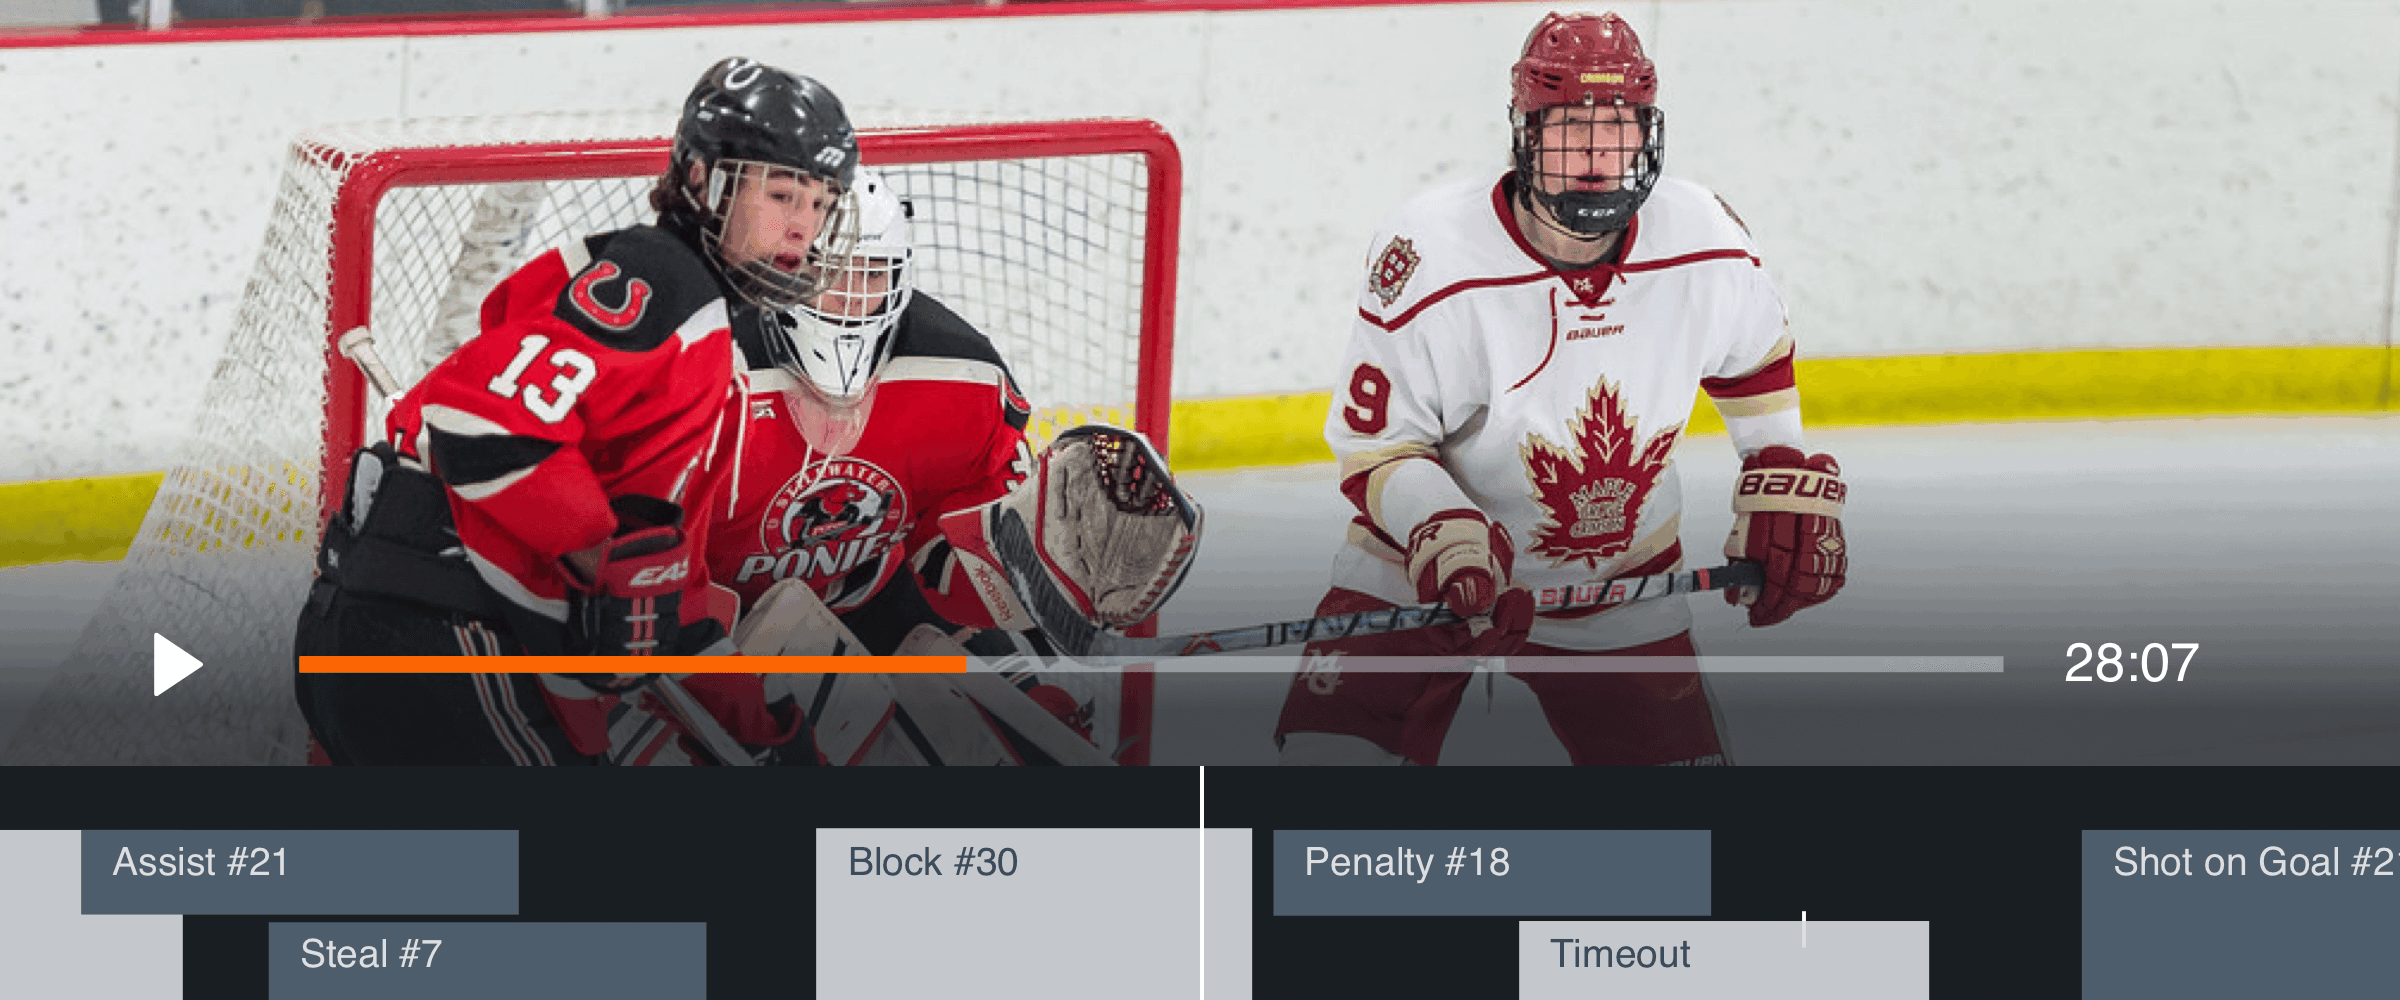 Our New Tools are Built for Ice Hockey